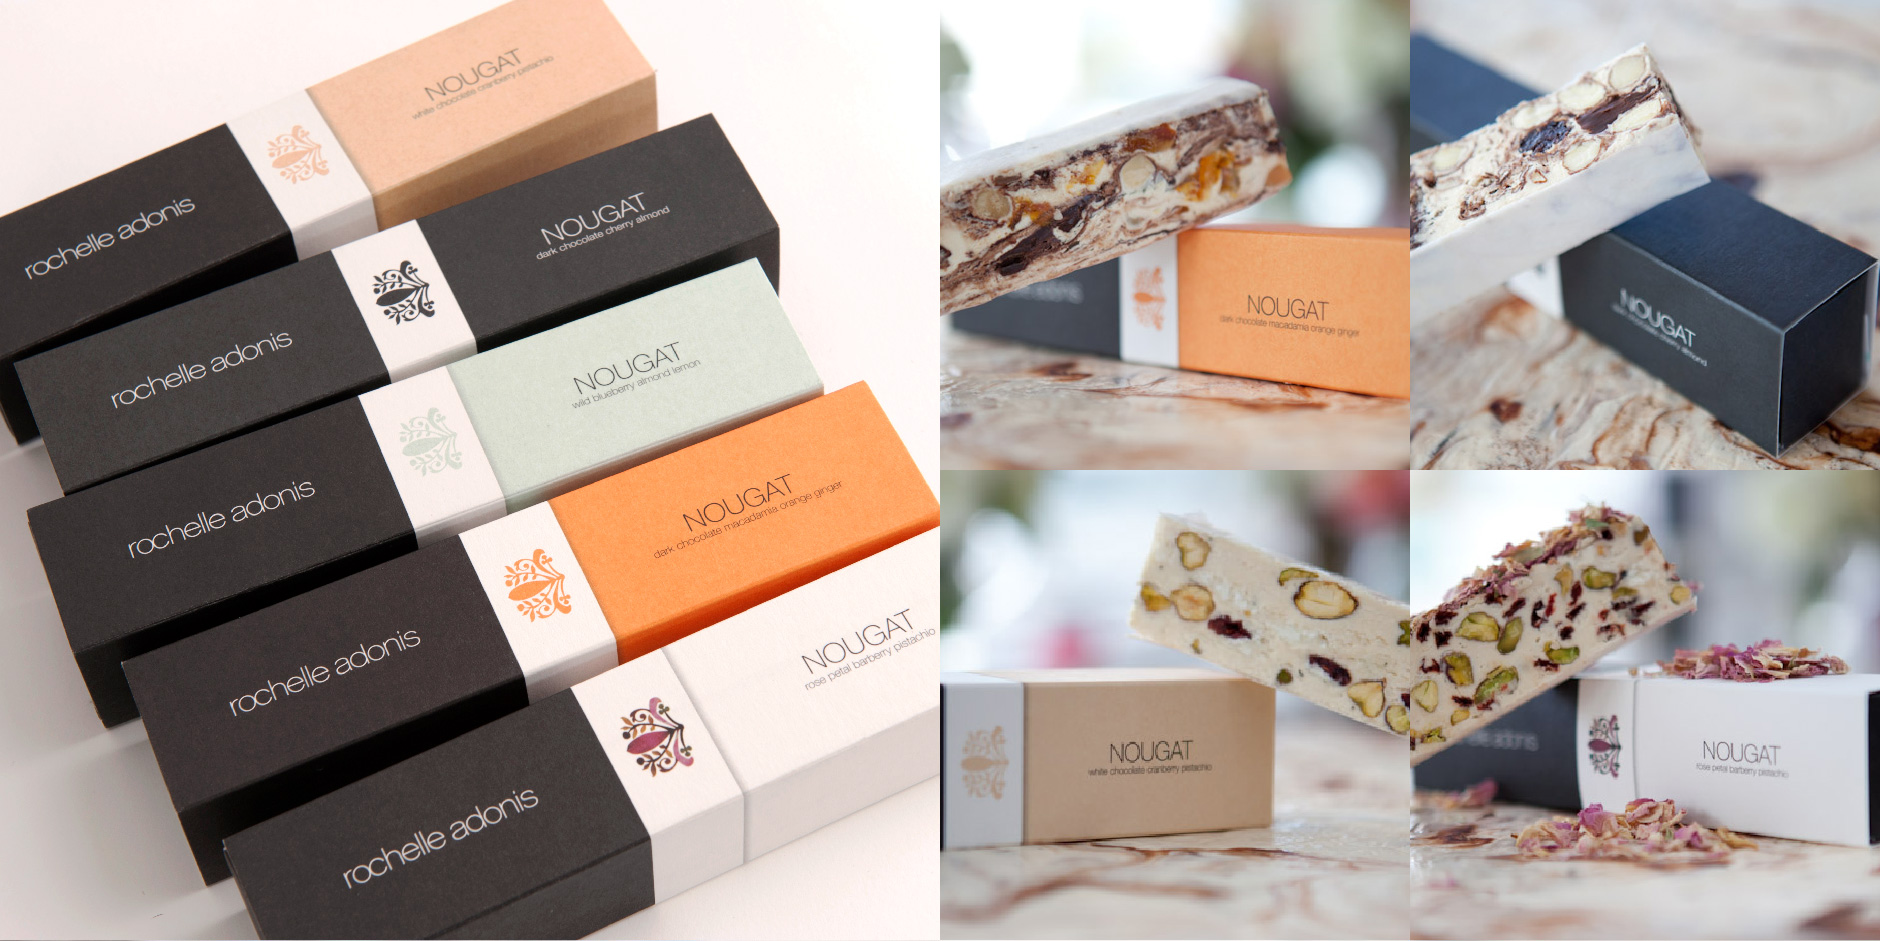 Sophisticated nougat packaging for some sweet treats